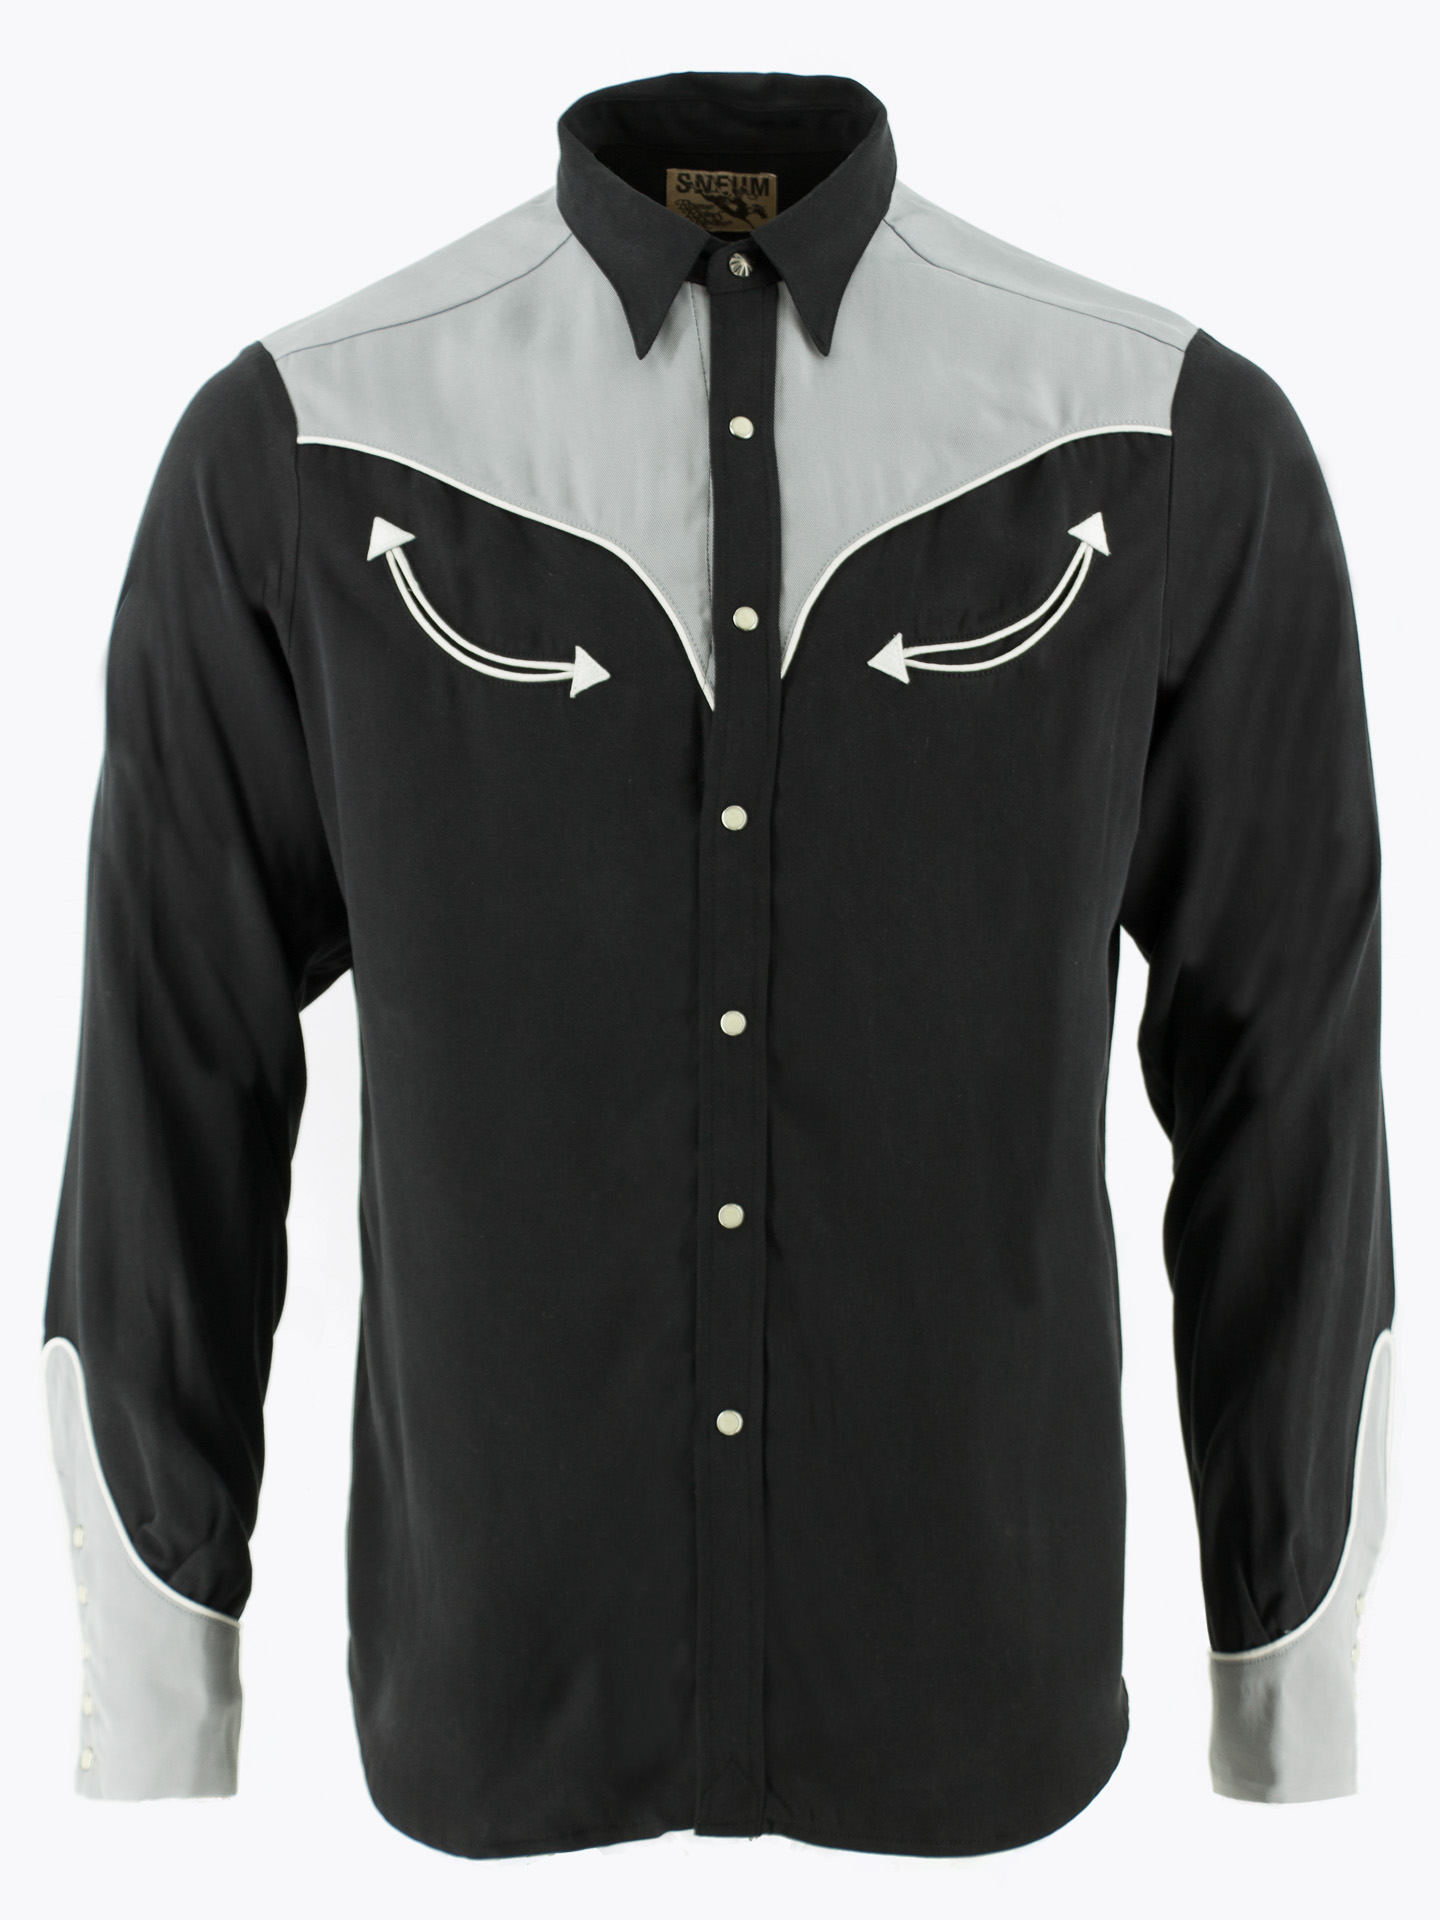 Two-tone smile pocket western shirt in black and grey